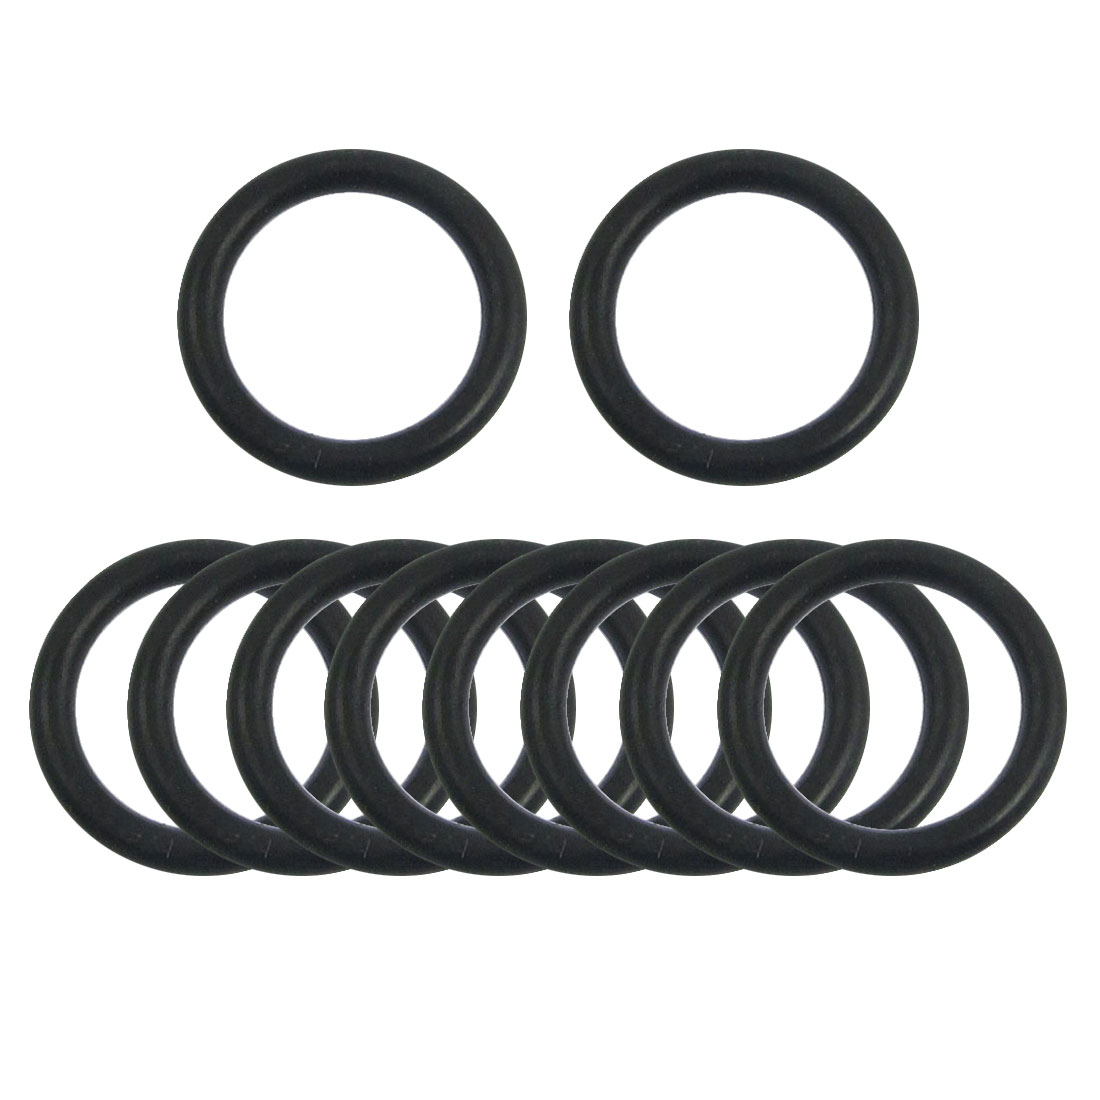 10 Pcs 17mm x 2.65mm Black Silicone O Rings Oil Seals Gaskets